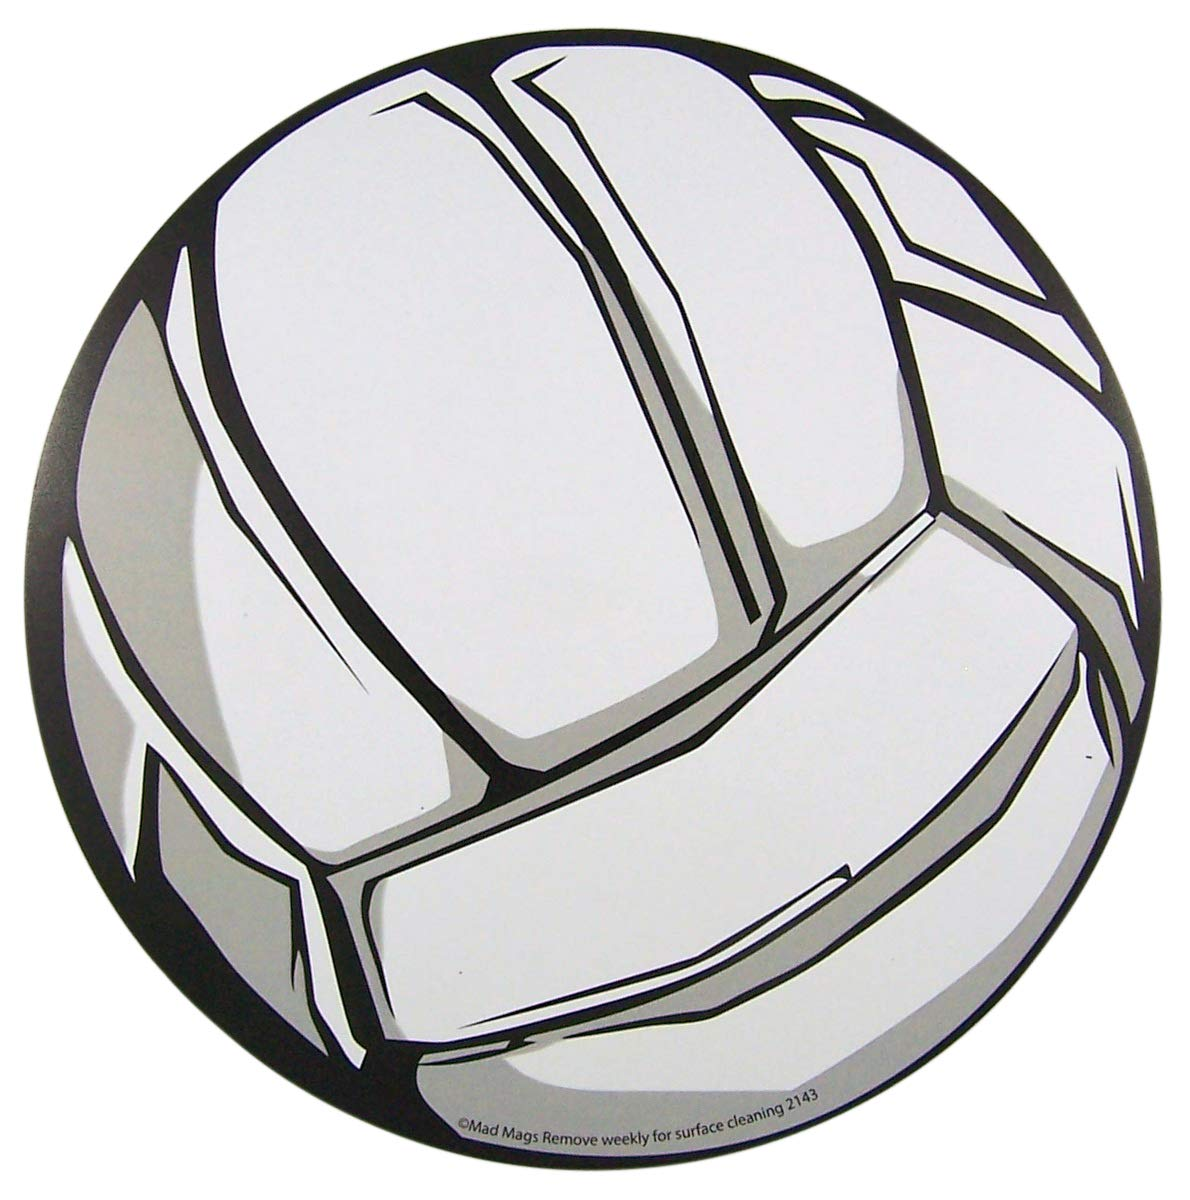 Sports Athlete Volleyball Magnet for School Lockers, Cars, or Refrigerators, 5 3/4 Inch